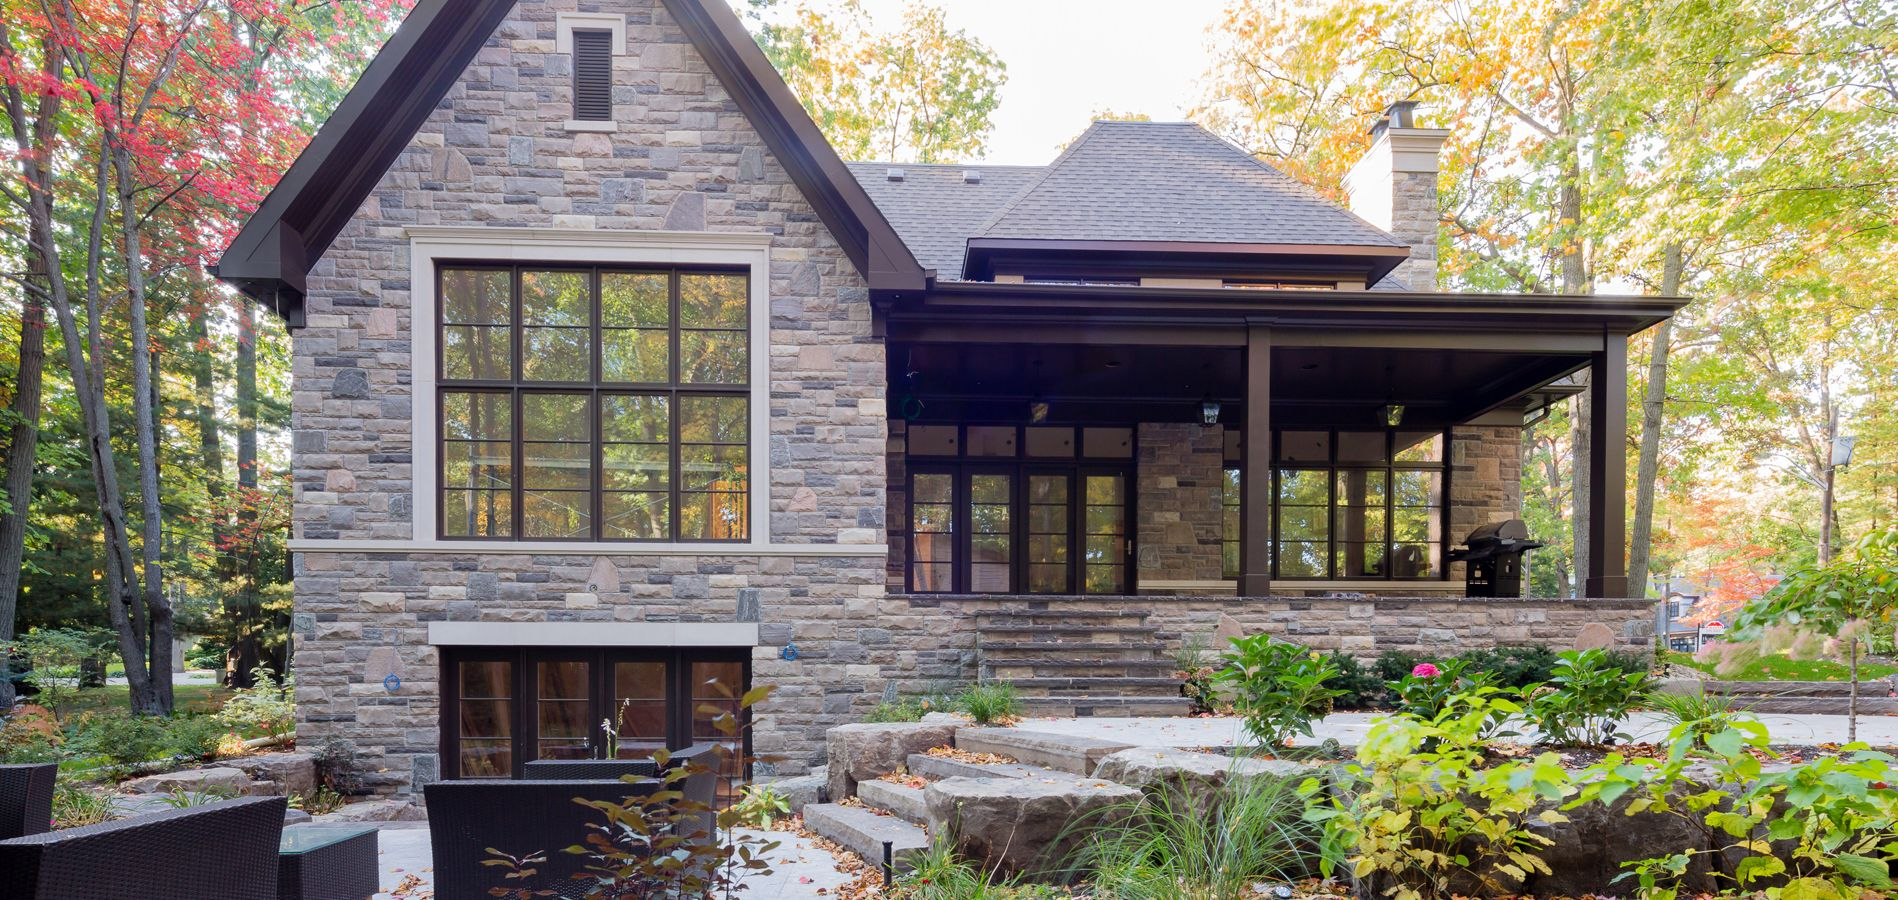 Copper Corner Transitional Portfolio David Small Designs Architectural Design Firm Small Lake Houses Lake House Plans Courtyard House Plans